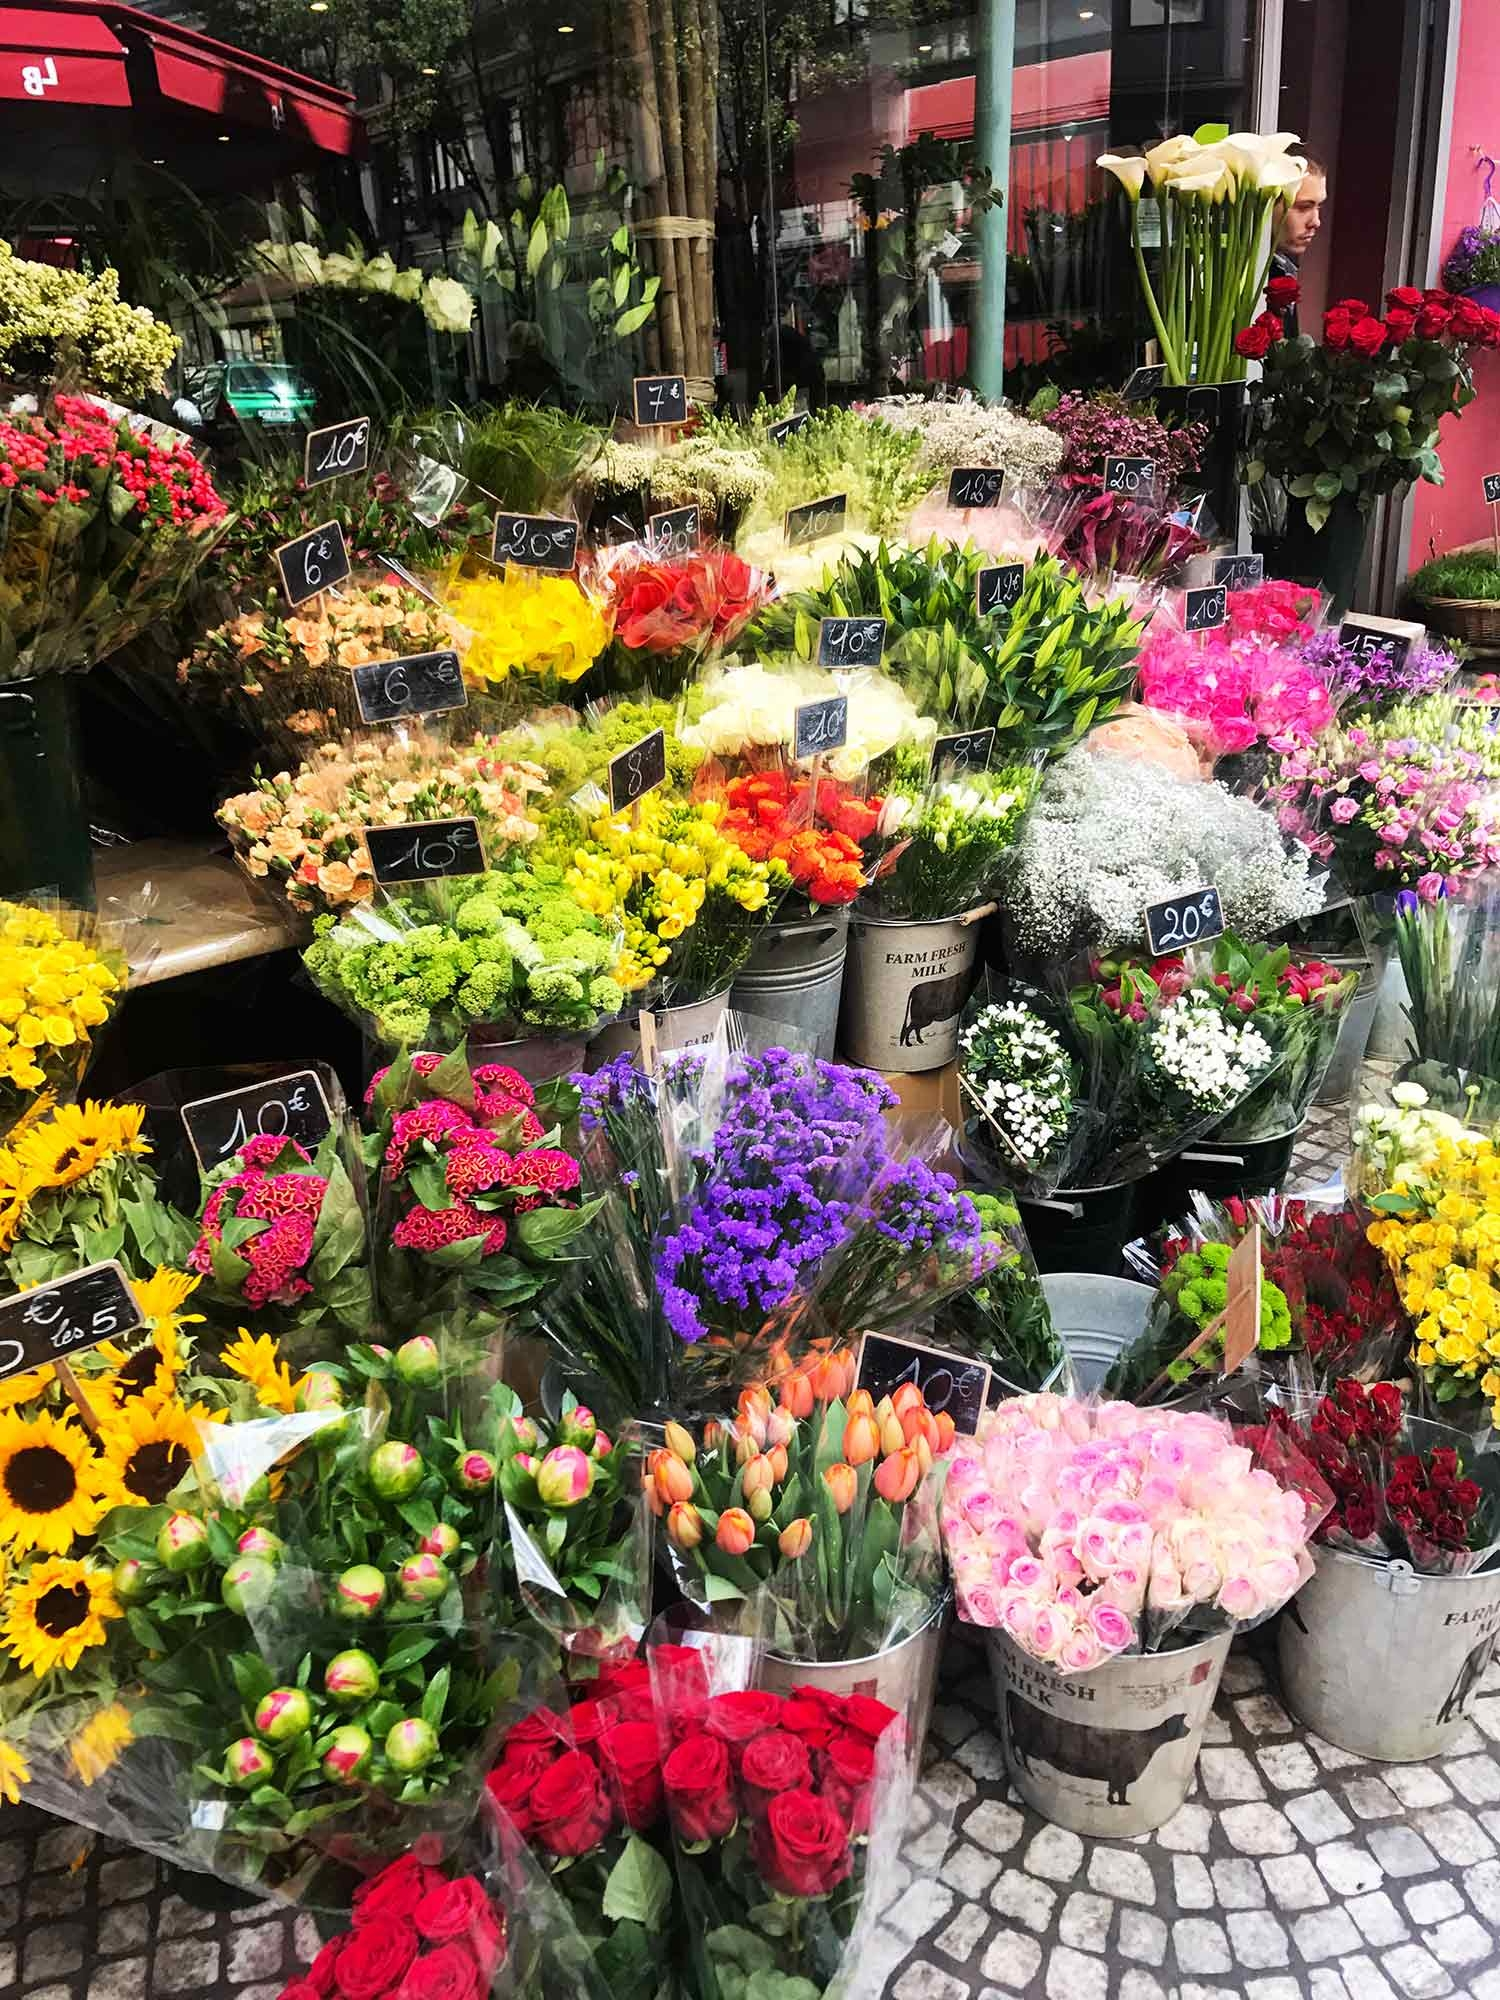 Bunches of flowers being sold street-side. December 2018